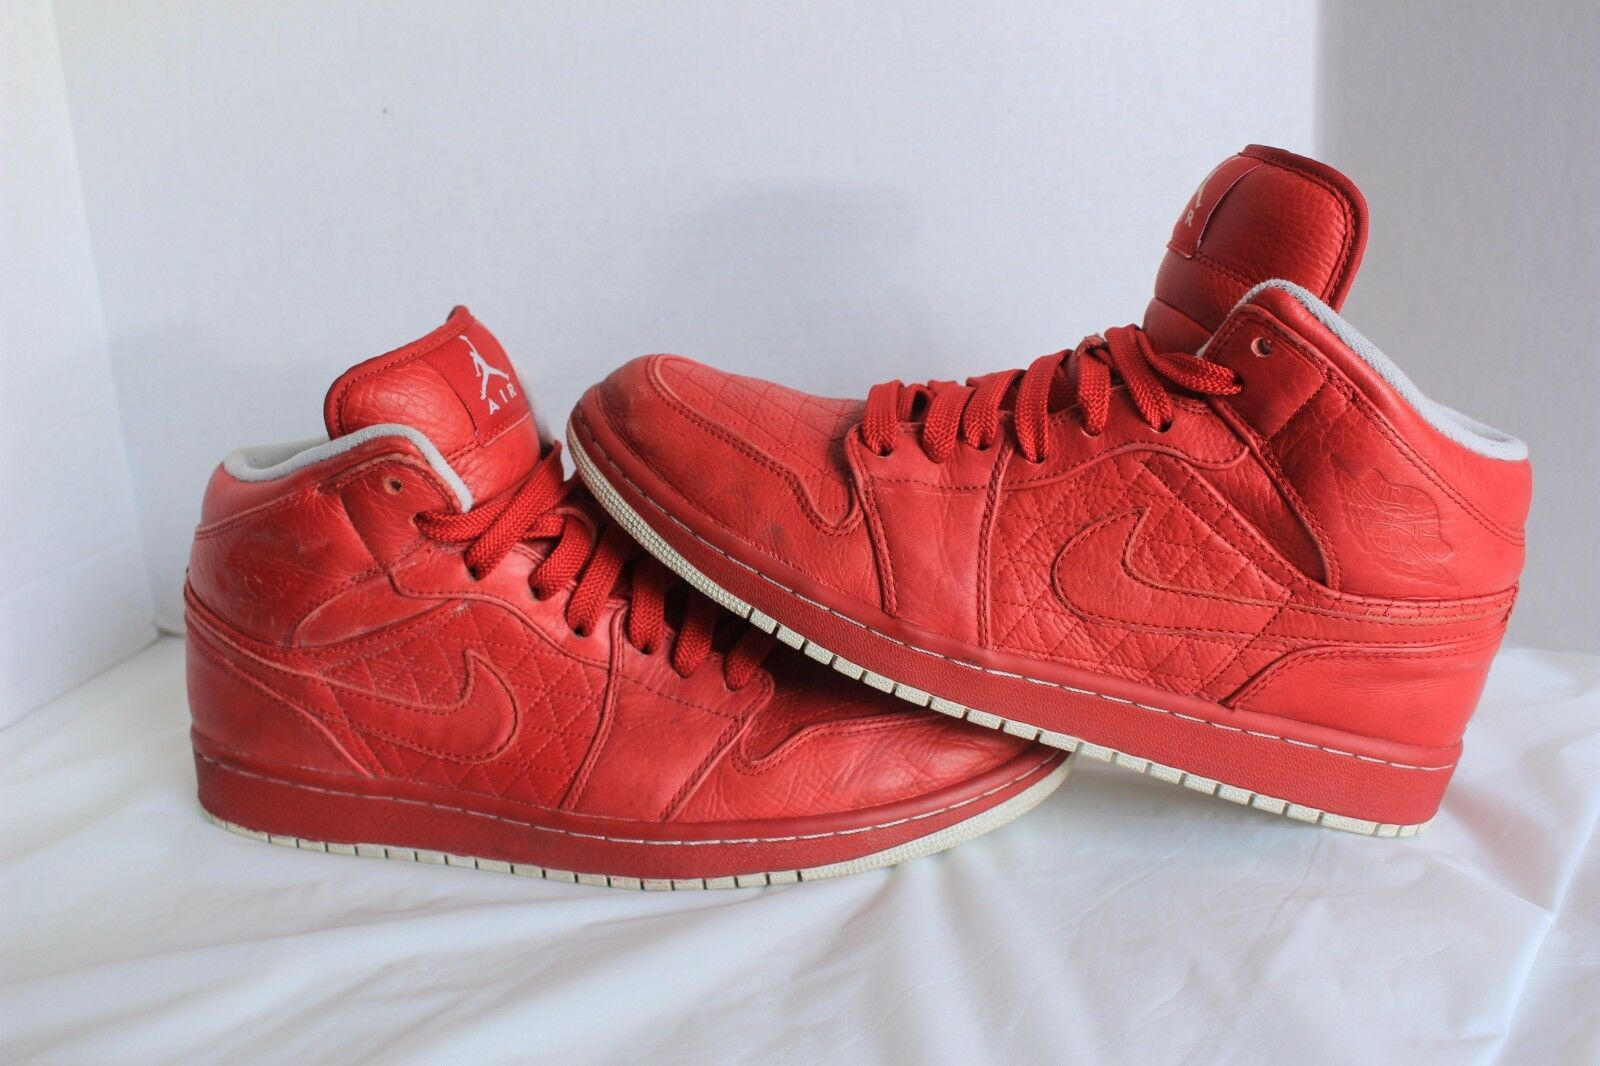 RARE!! Nike Air Jordan Shoes 1 Phat Premier Quilt Varsity Red Sz 11  375173-600 The most popular shoes for men and women